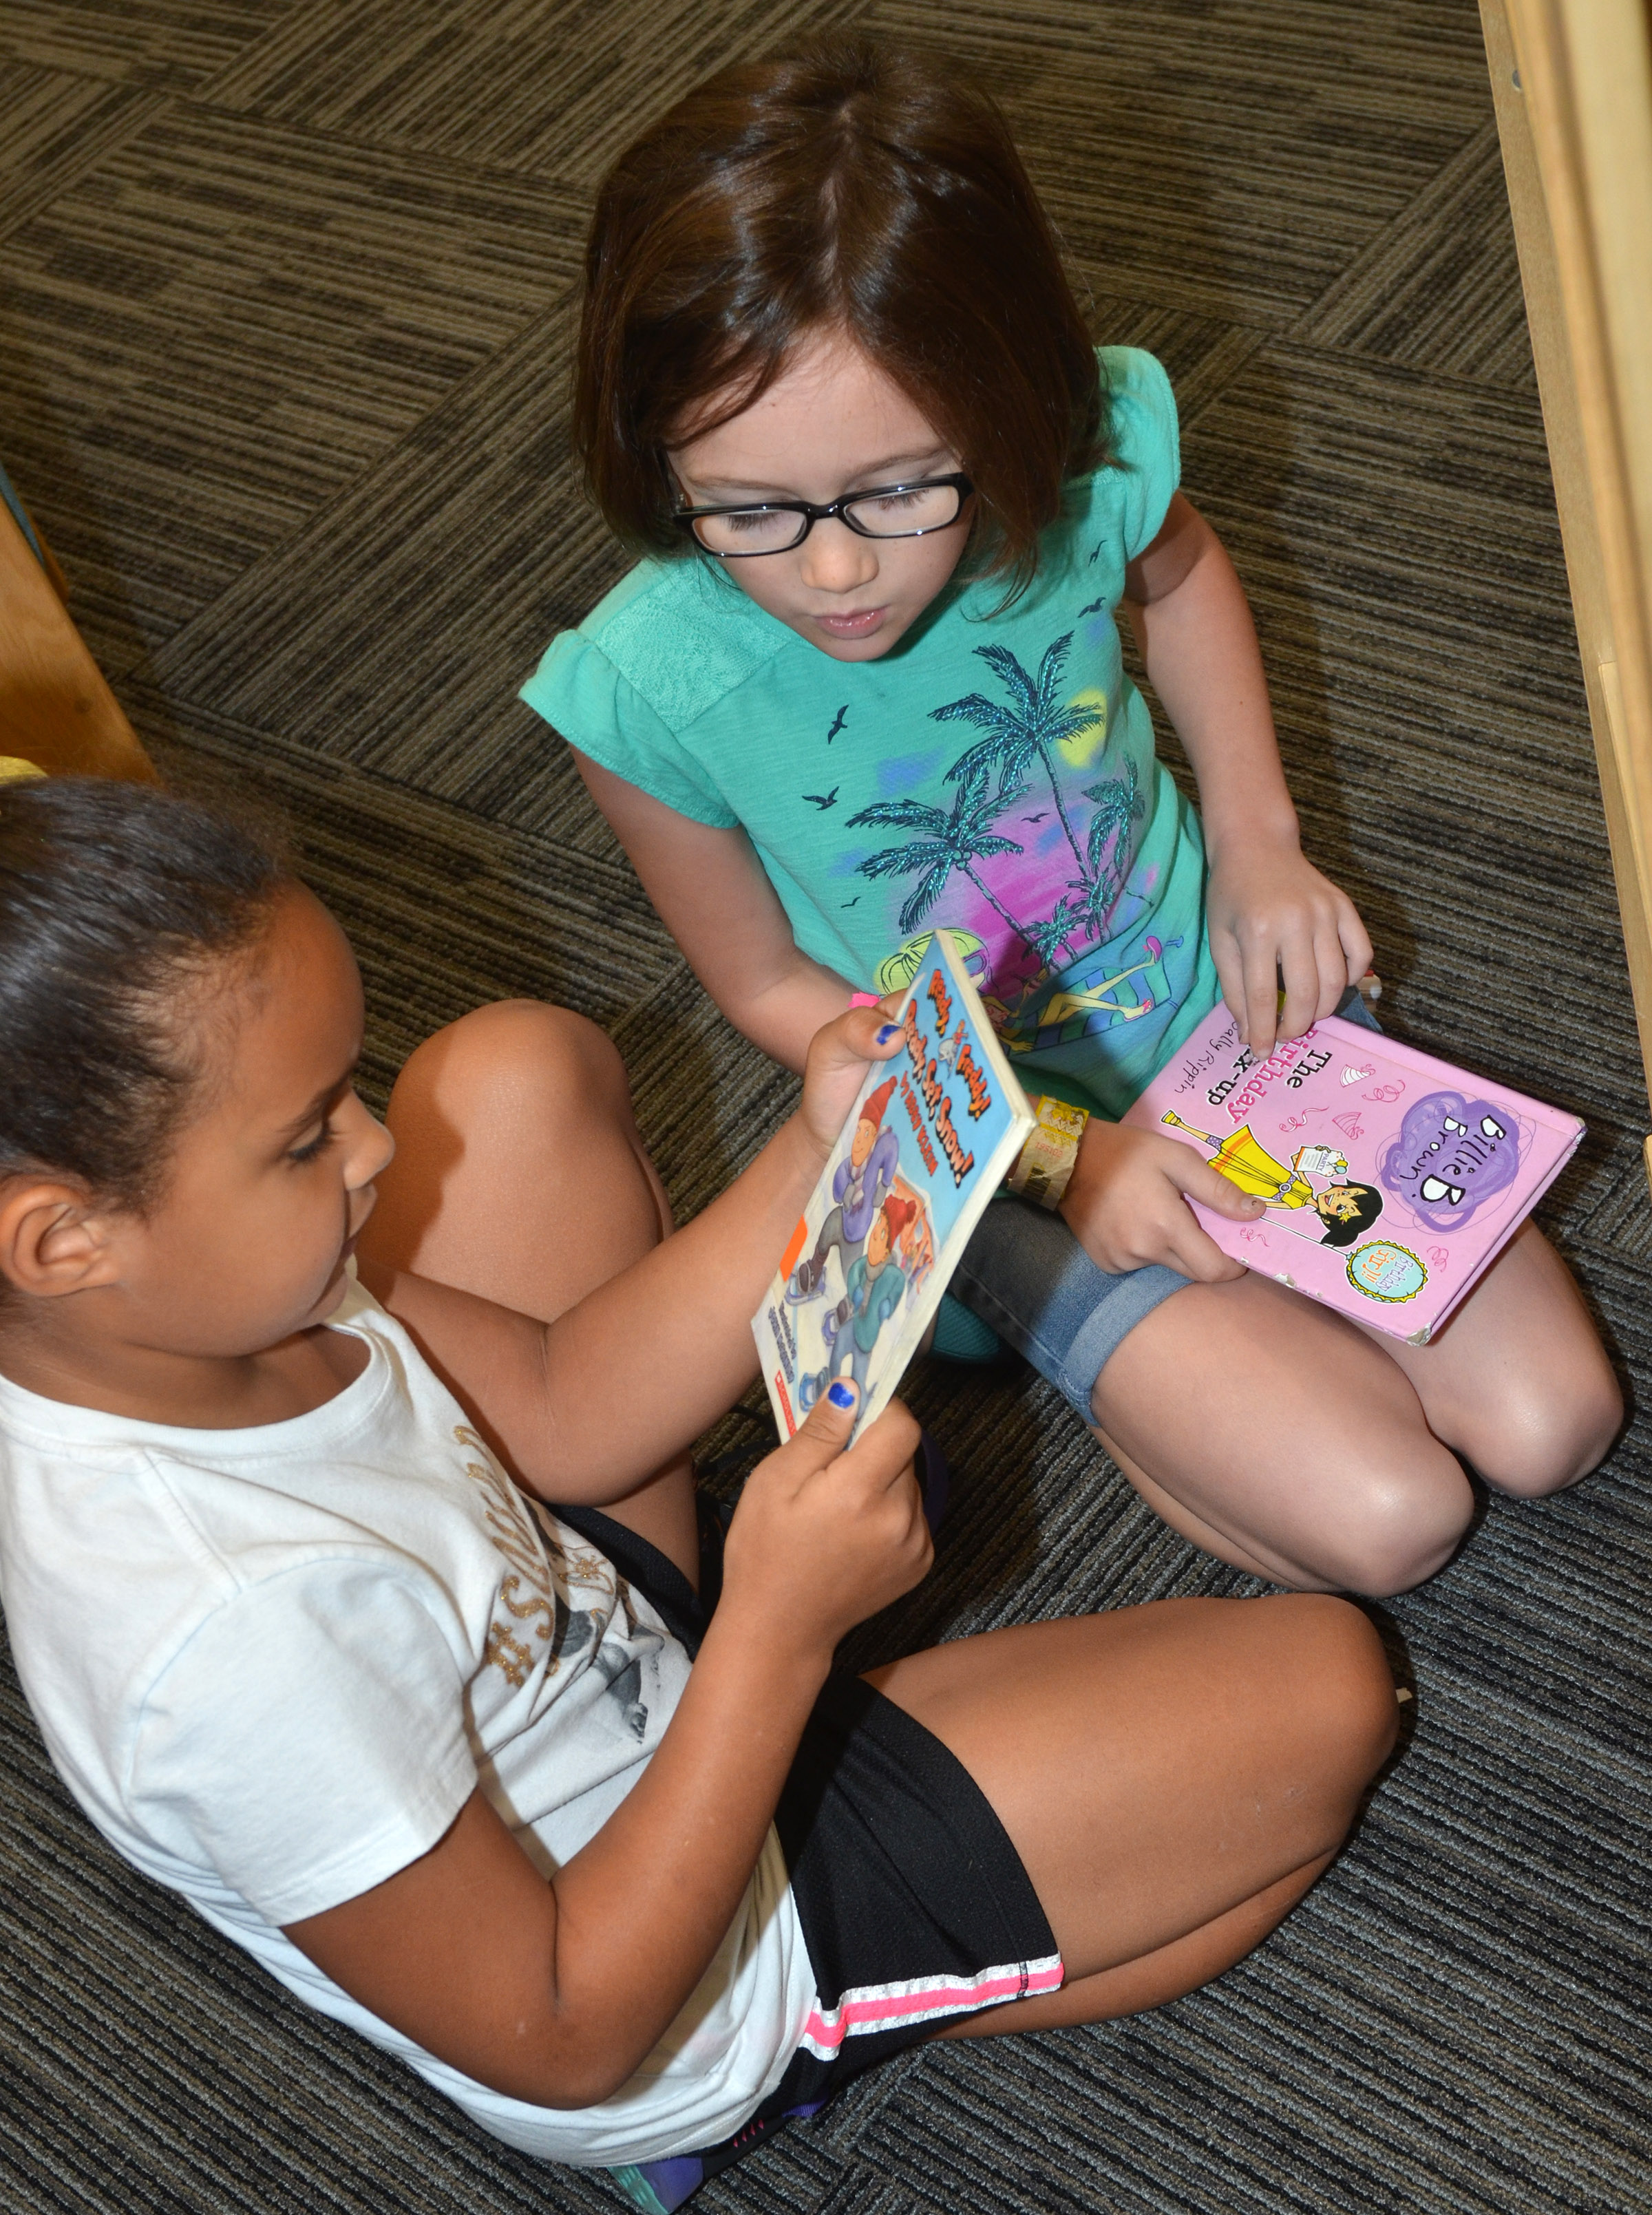 CES second-graders Amani Bridgewater, at left, and Anna Keith look at books in the library.